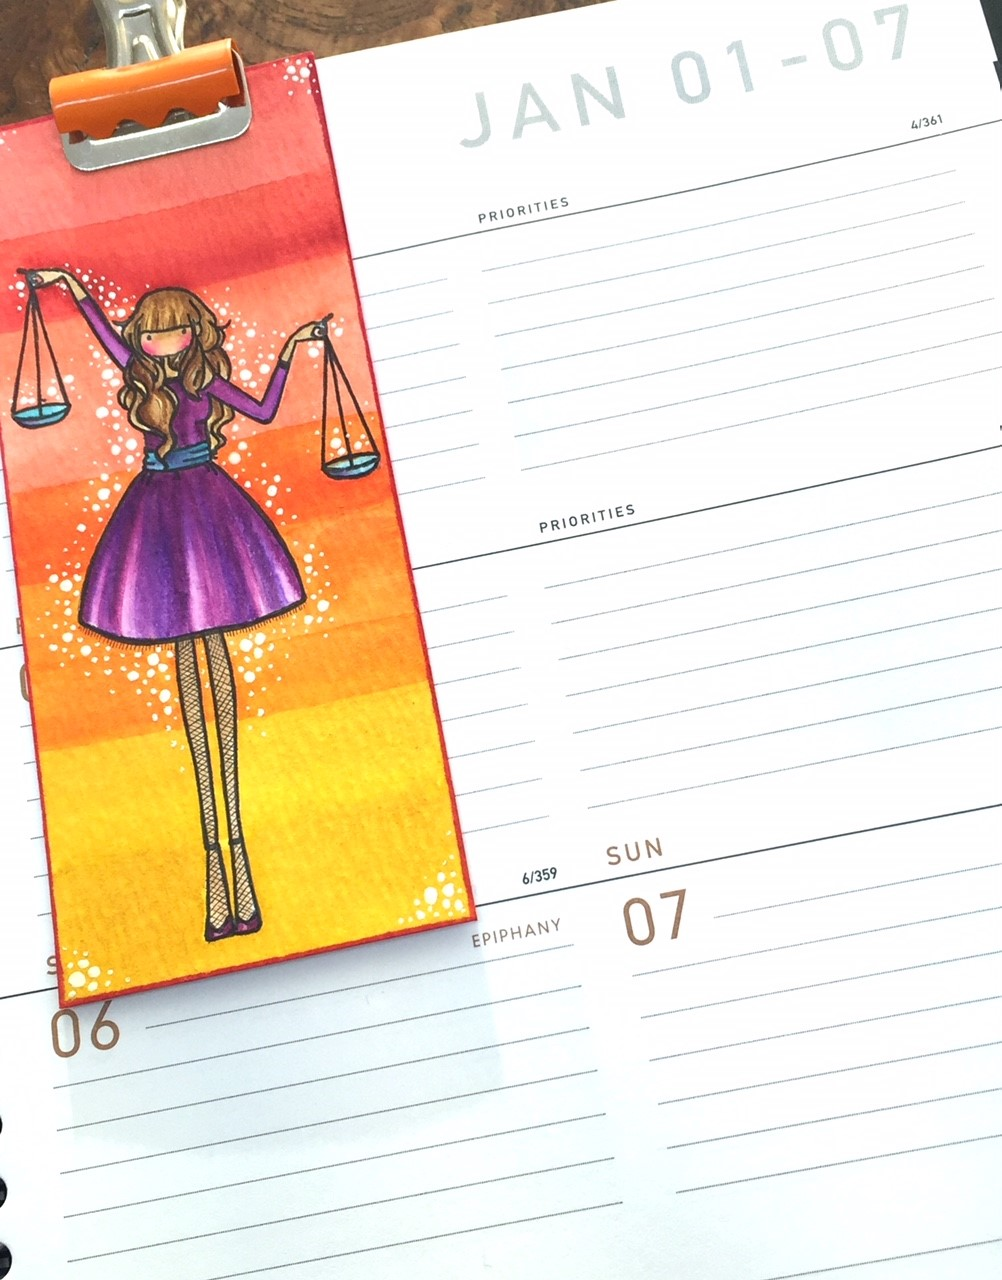 www.stampingbella.com: rubber stamp used: UPTOWN ZODIAC GIRL LIBRA card by KATHY RACOOSIN